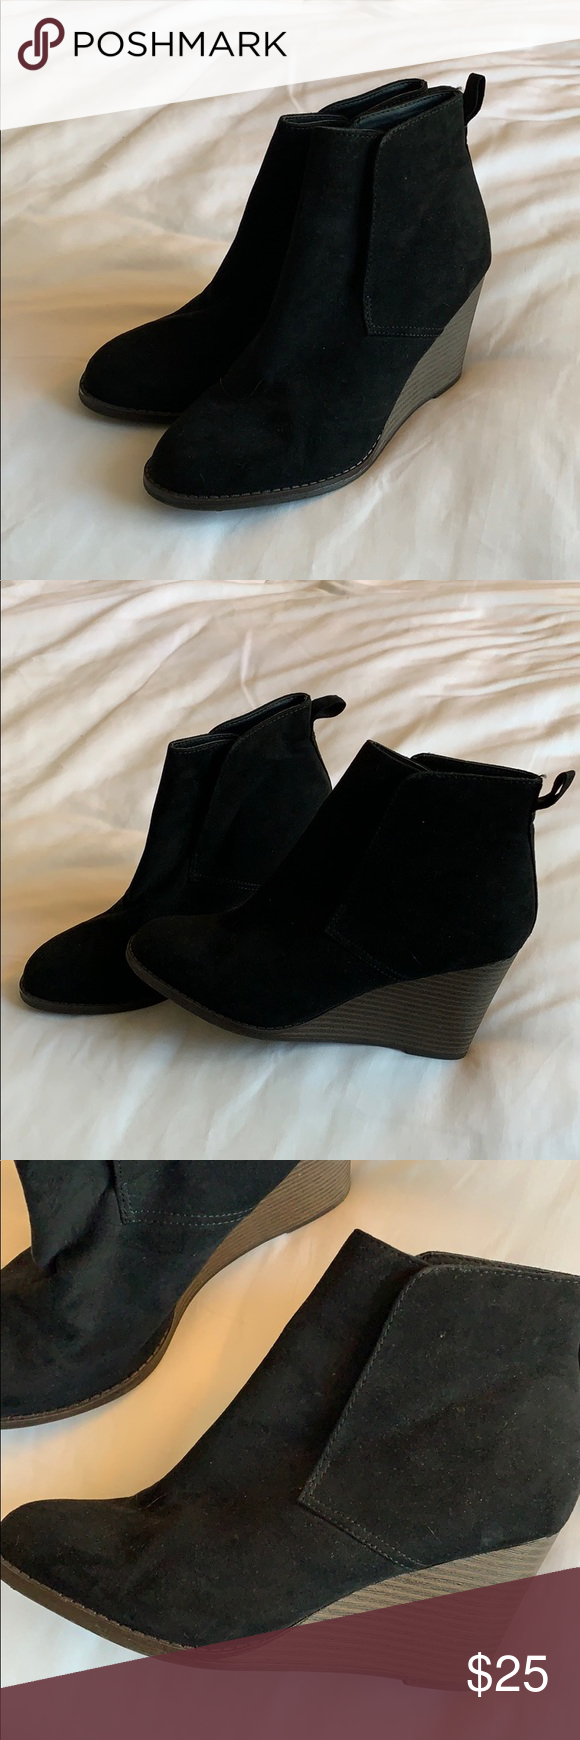 Black booties Black booties wit a small wedge. Worn only once. Very comfortable. They look Super cute with skinny jeans. Size 8 Merona Shoes Ankle Boots & Booties #skinnyjeansandankleboots Black booties Black booties wit a small wedge. Worn only once. Very comfortable. They look Super cute with skinny jeans. Size 8 Merona Shoes Ankle Boots & Booties #skinnyjeansandankleboots Black booties Black booties wit a small wedge. Worn only once. Very comfortable. They look Super cute with skinny jeans. S #skinnyjeansandankleboots